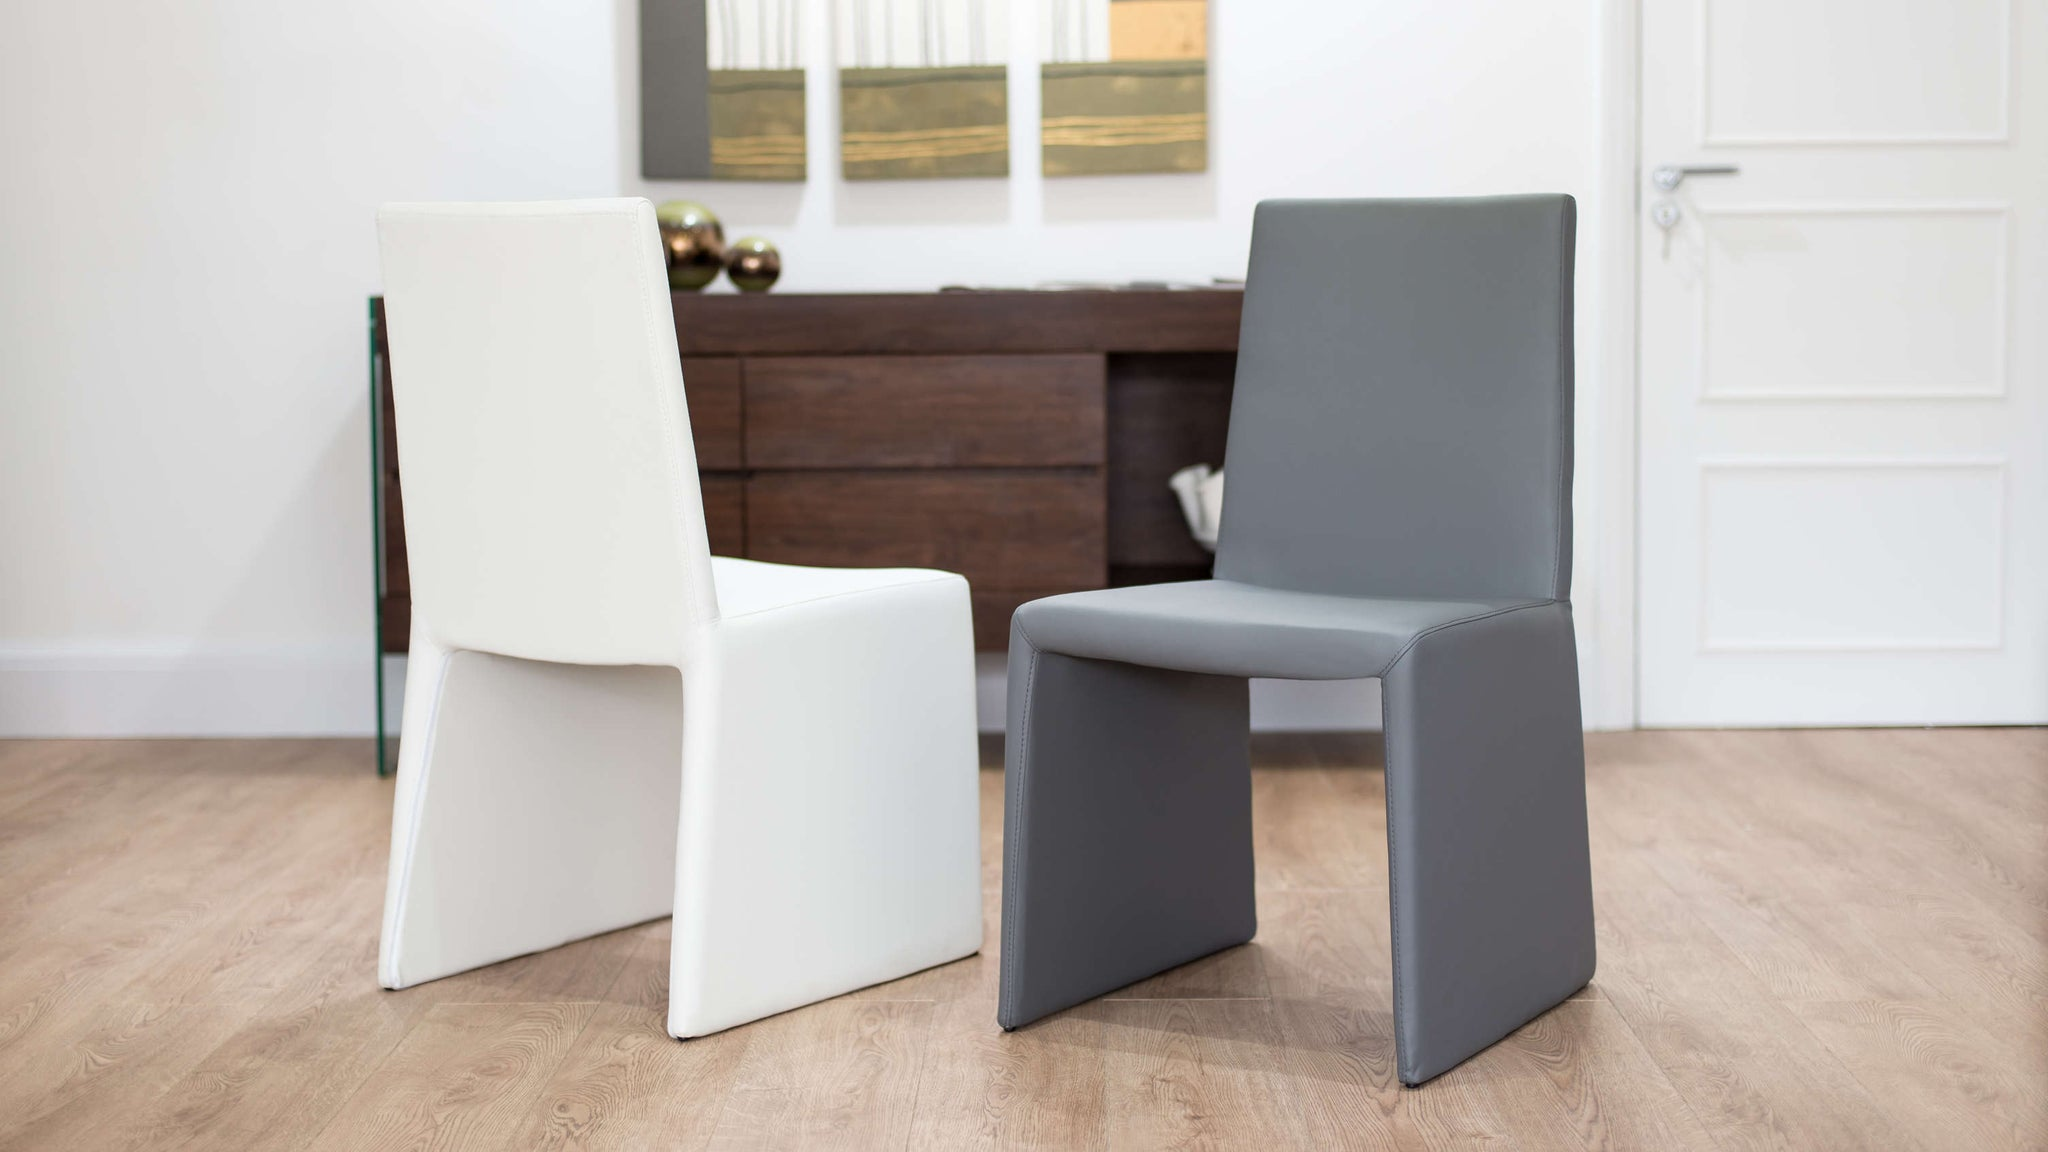 Box Styled Dining Chairs UK